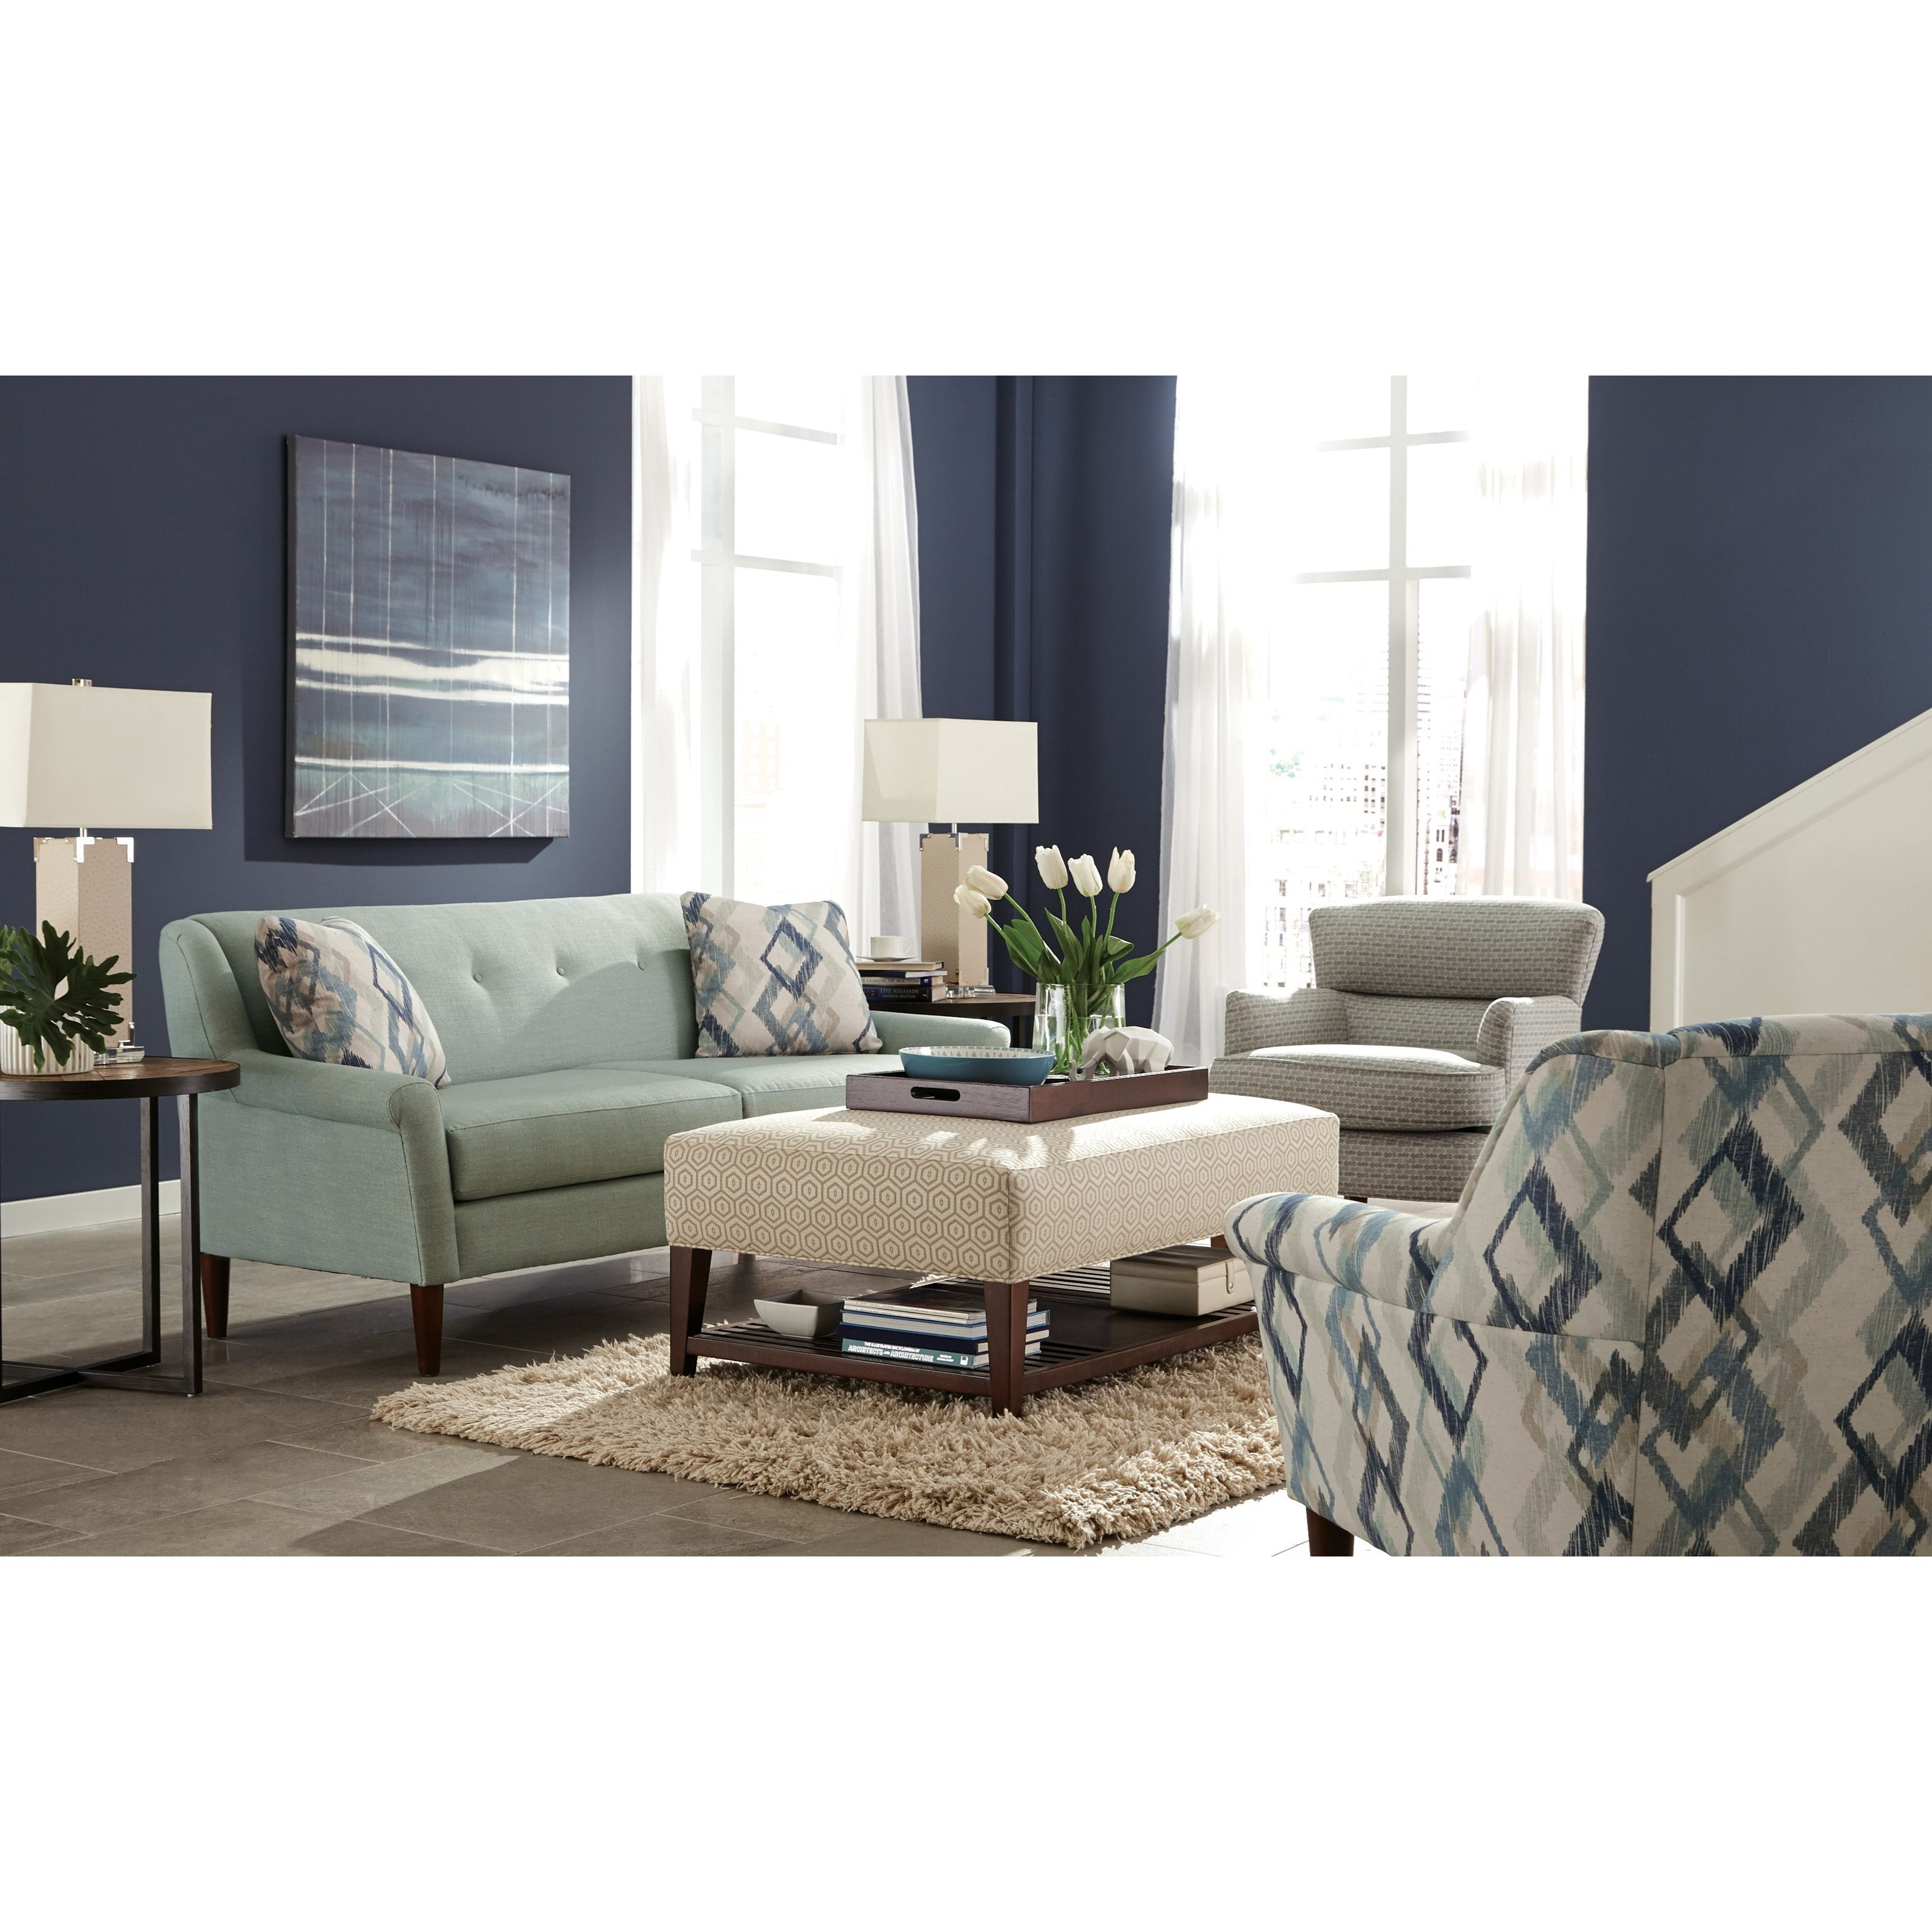 furniture full size jcpenney scale sleeper small living decorating sofas apartments sets to s leather macy of a rooms best spaces room how couches go for sectional ideas apartment corner decorate